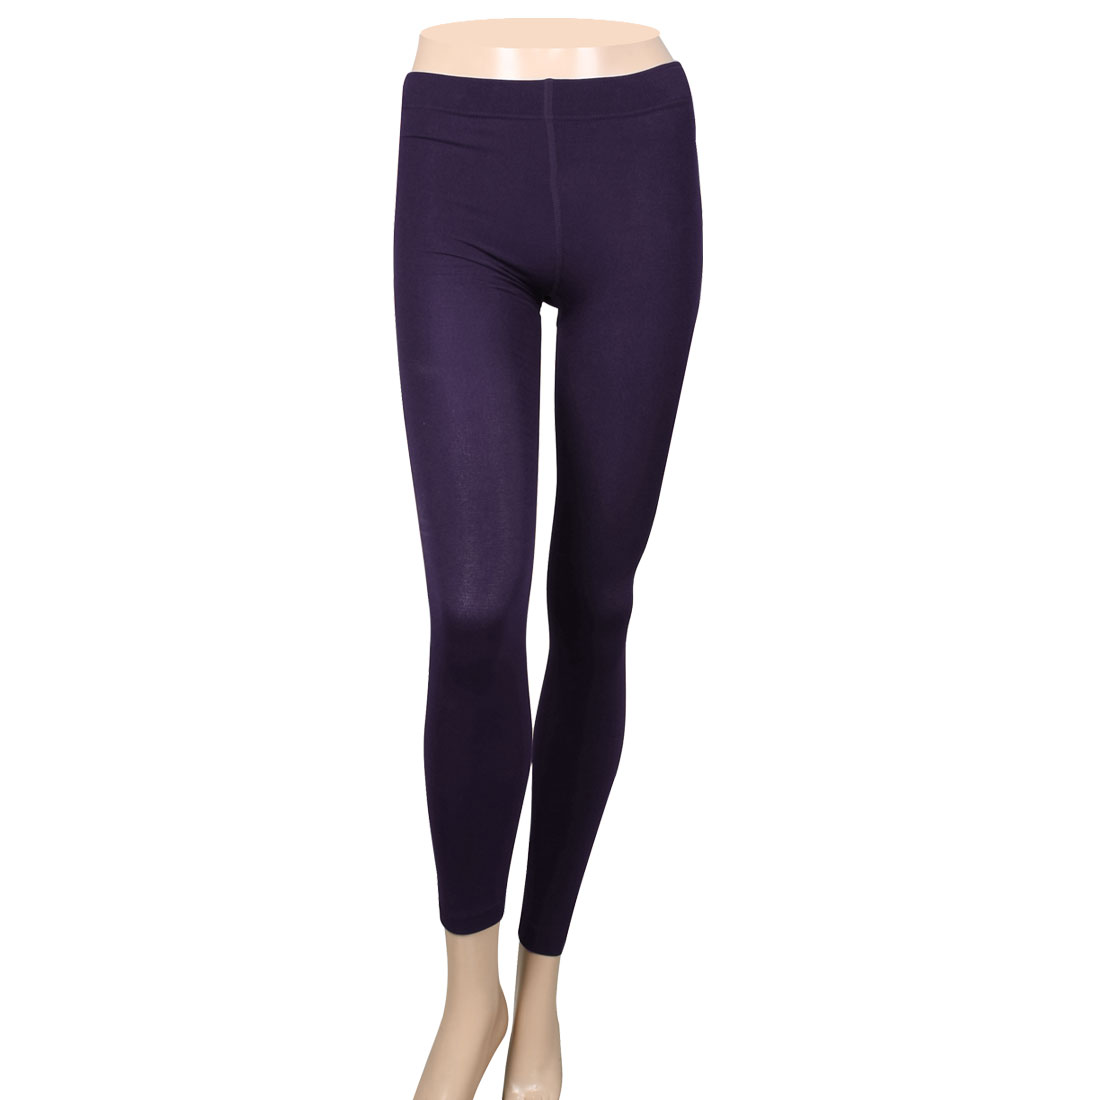 Women Winter Soft Footless Stretch Tights Skinny Pants Leggings Purple XS